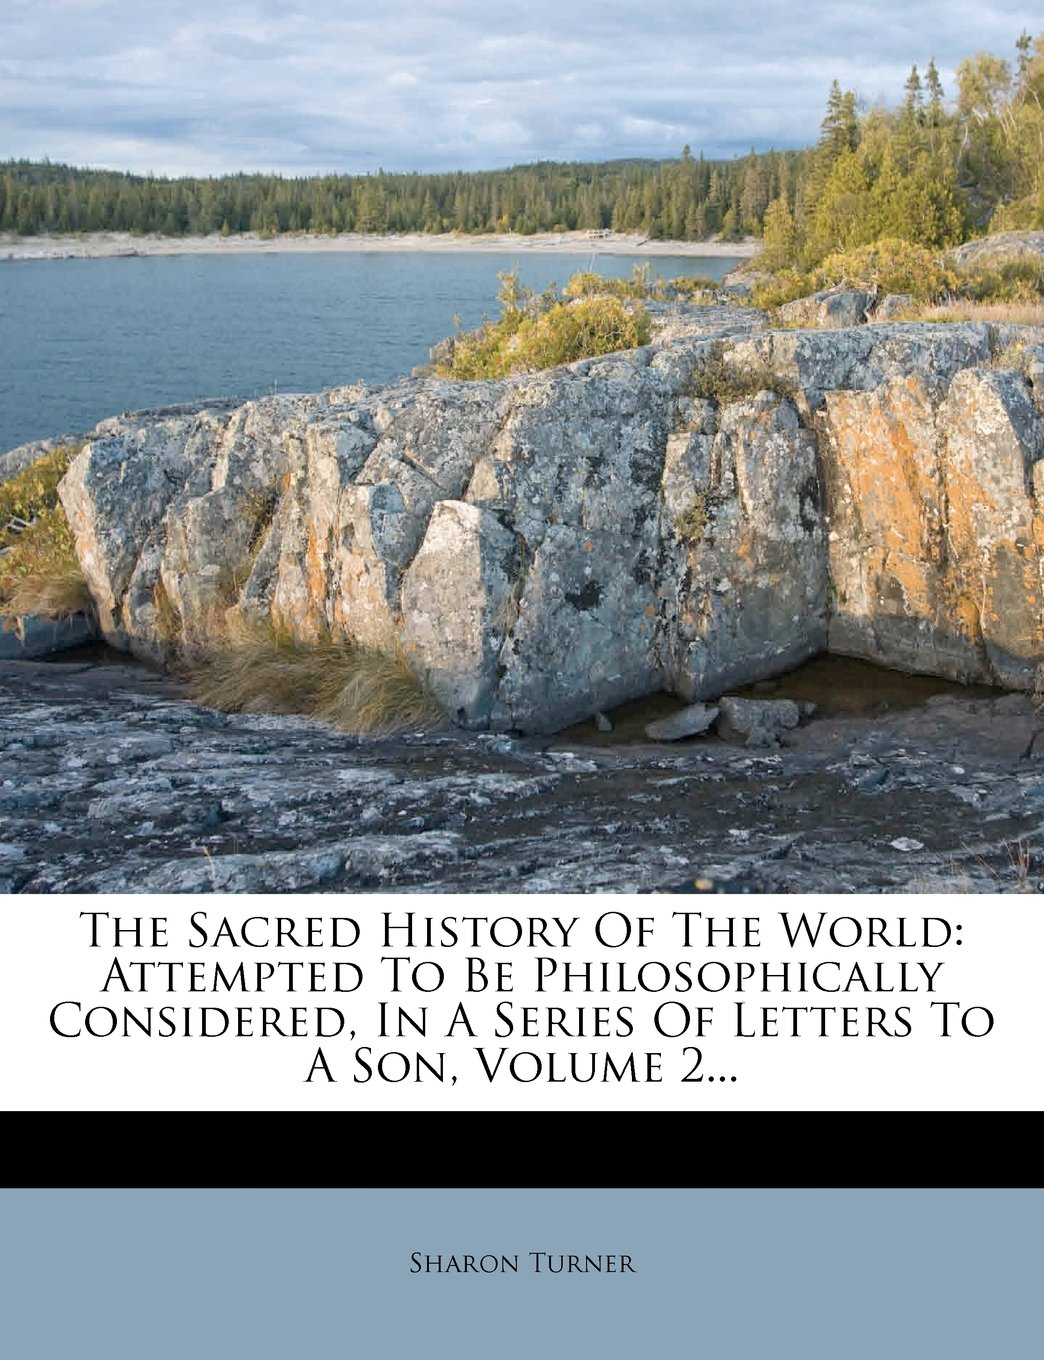 Download The Sacred History Of The World: Attempted To Be Philosophically Considered, In A Series Of Letters To A Son, Volume 2... PDF